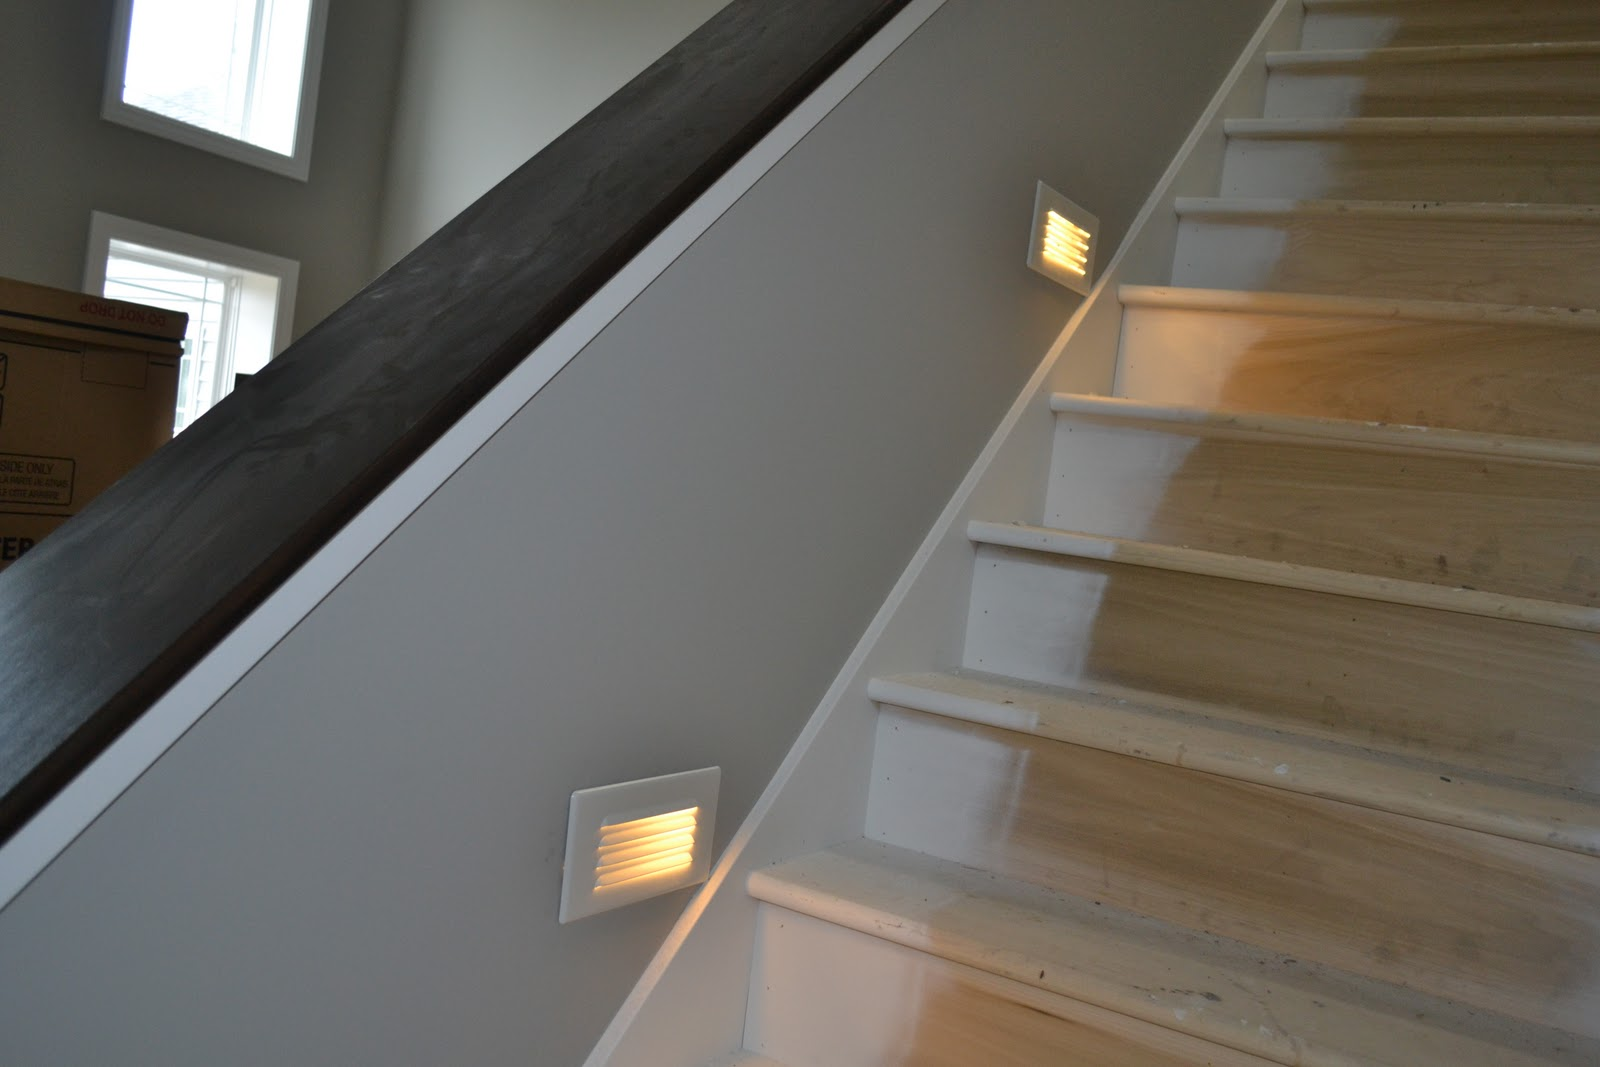 Lighting Basement Washroom Stairs: De Jong Dream House: Lighting, LVT And Loving Our Tile